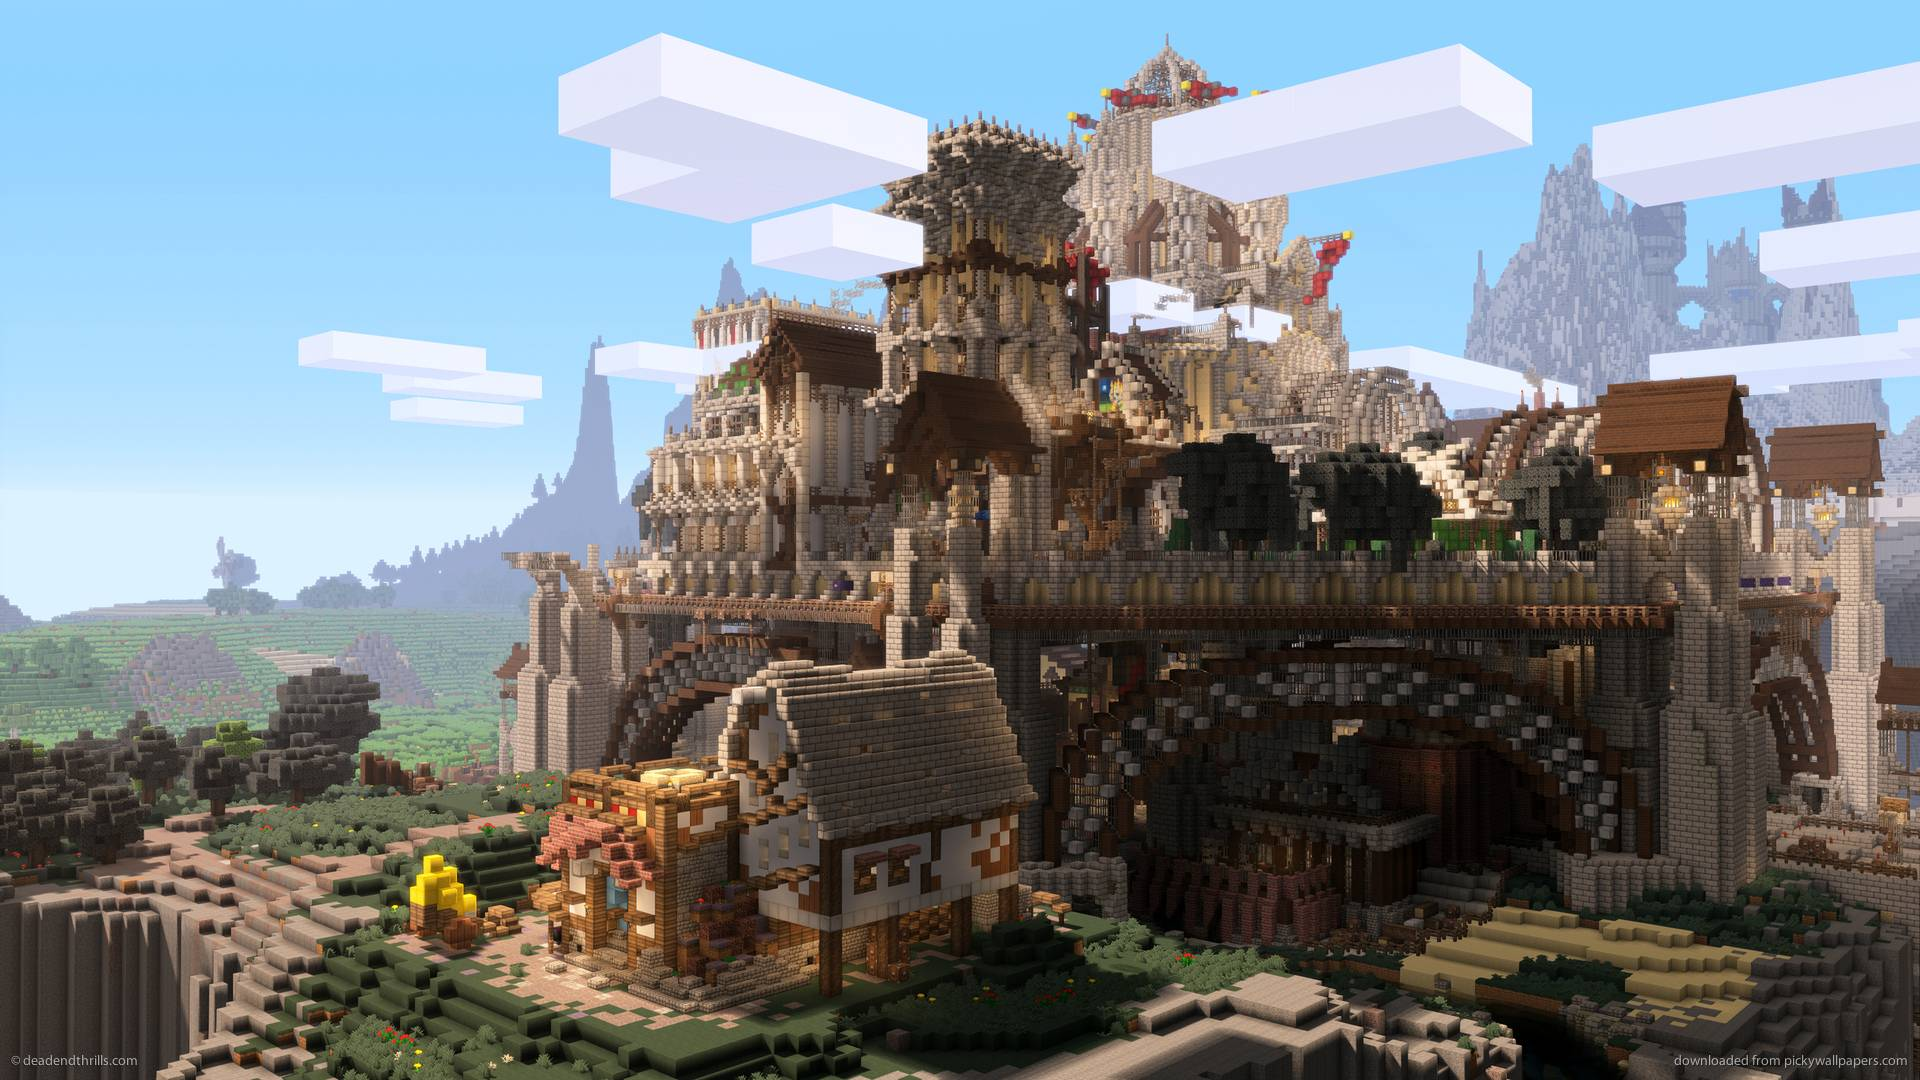 Download 1920x1080 Minecraft Ramparts Wallpapers